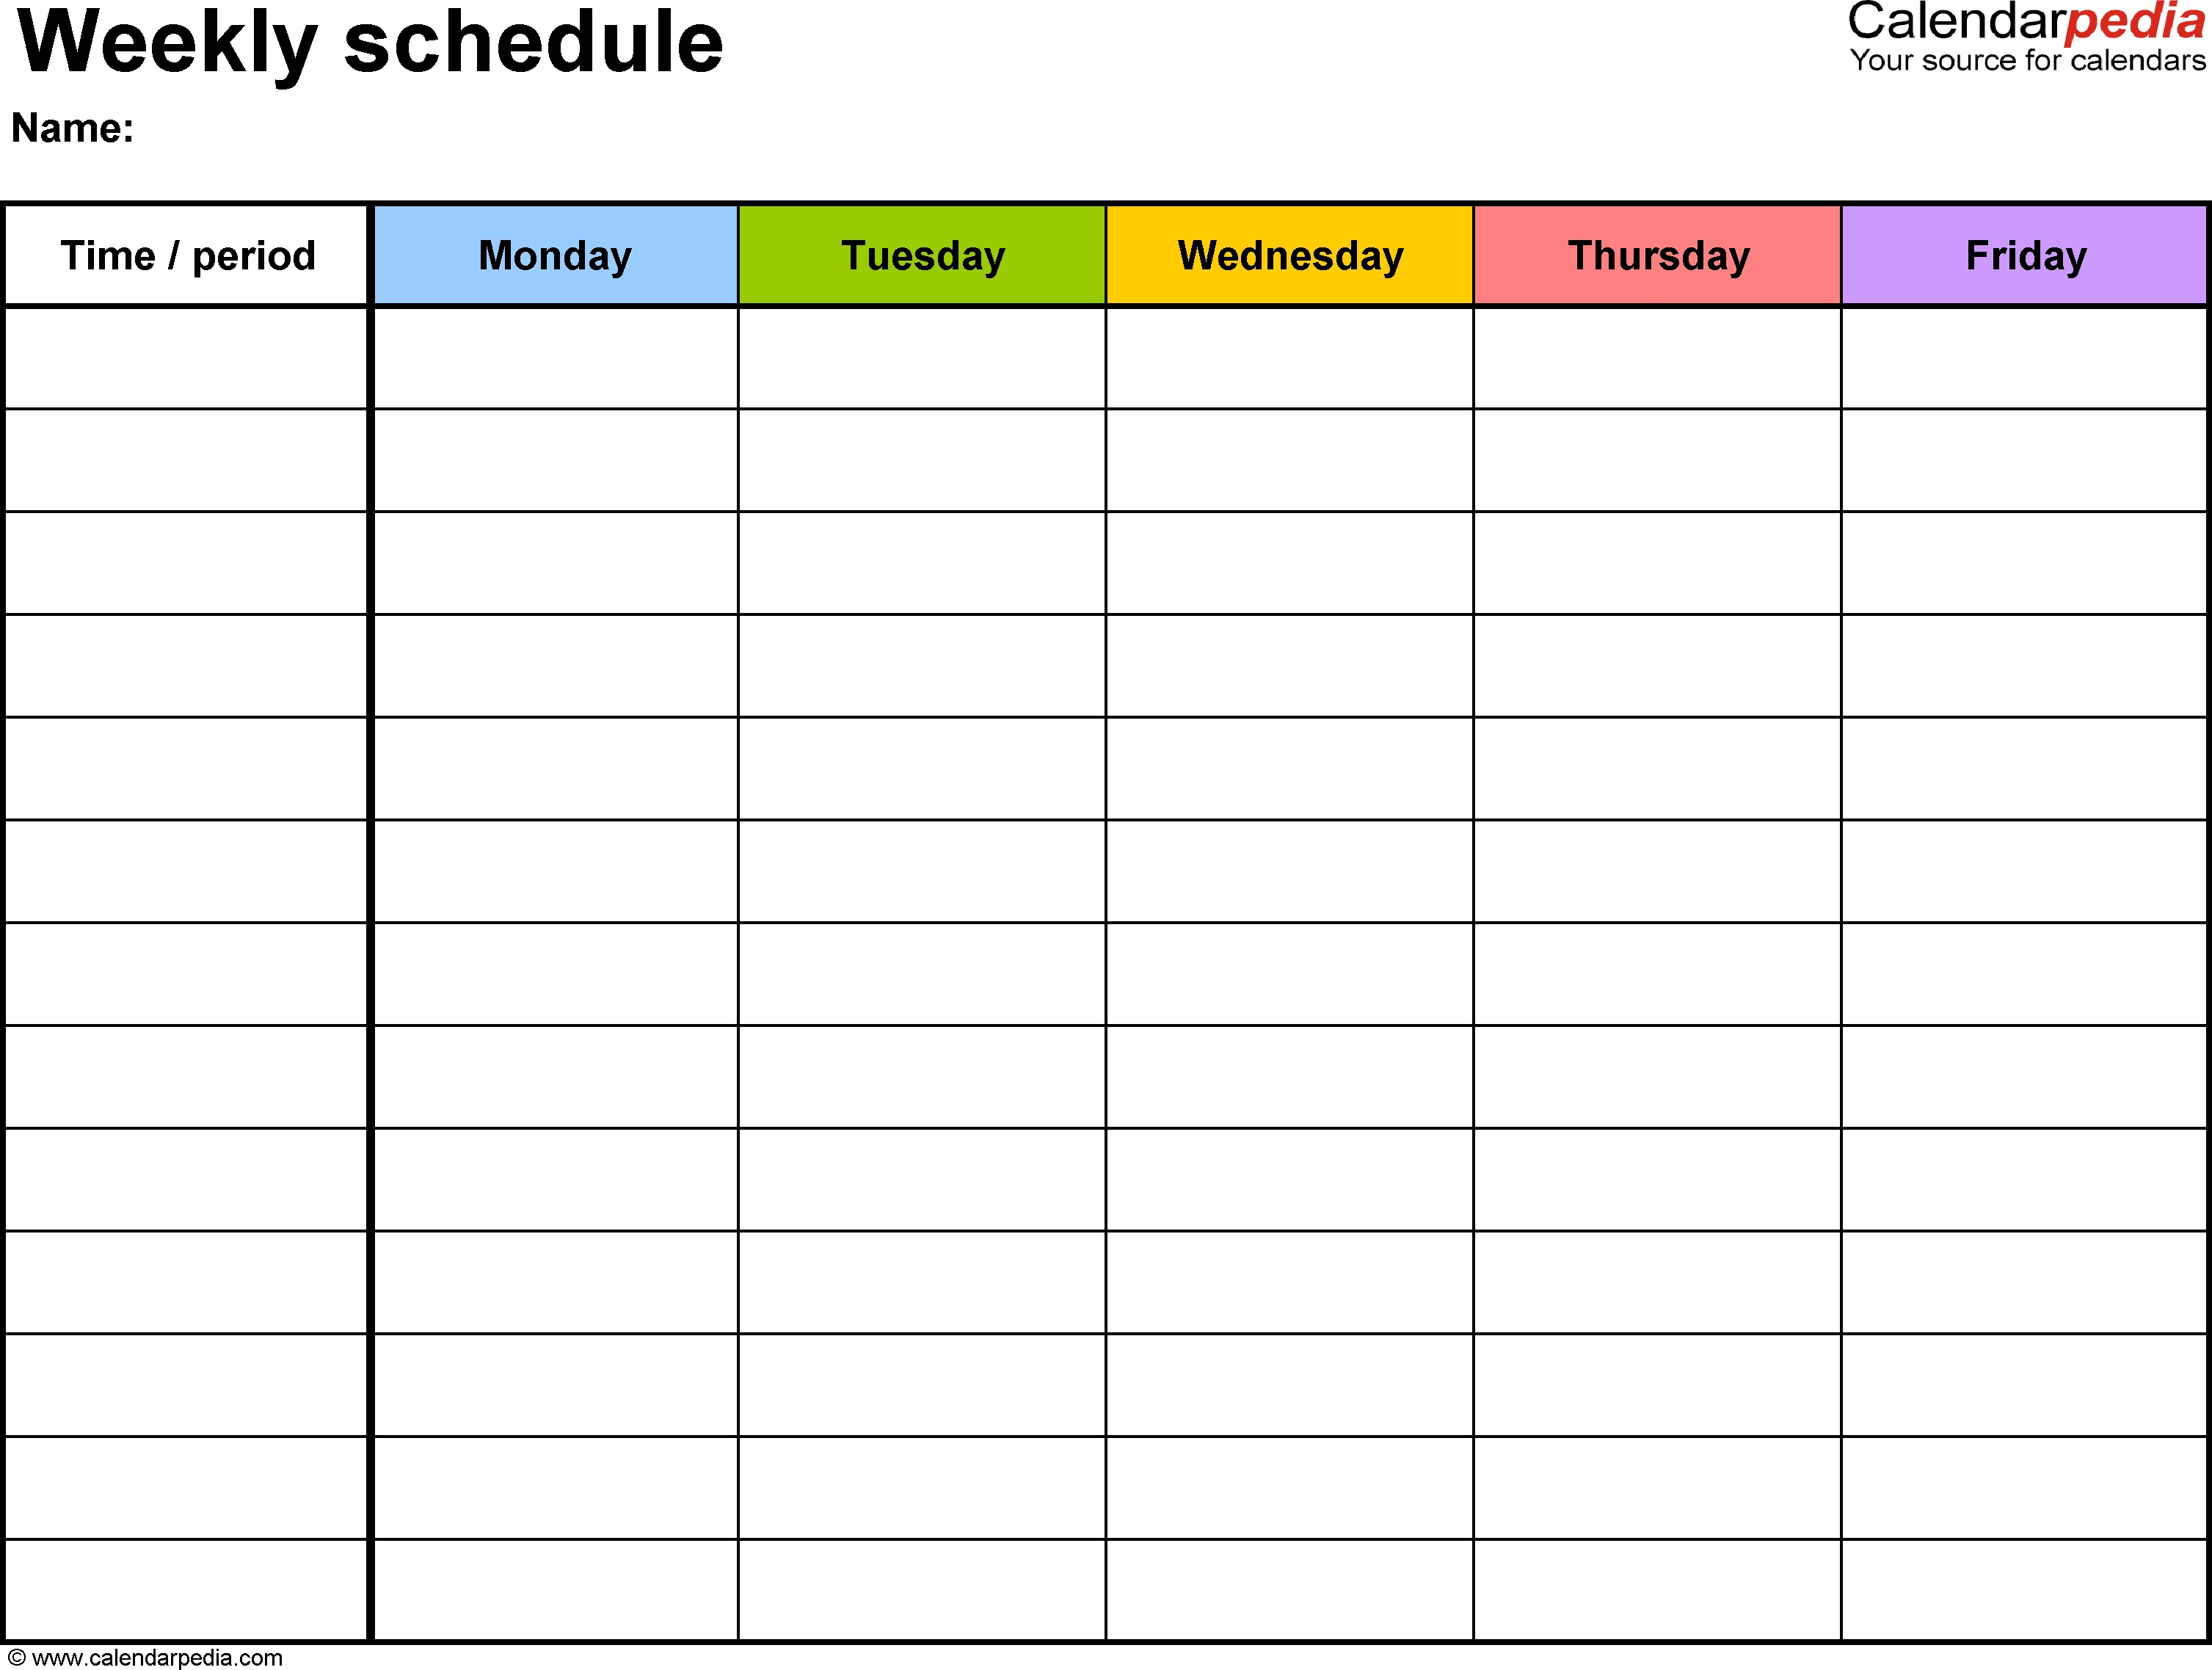 Free Weekly Schedule Templates For Word - 18 Templates inside Monthly Calendar Monday Through Friday